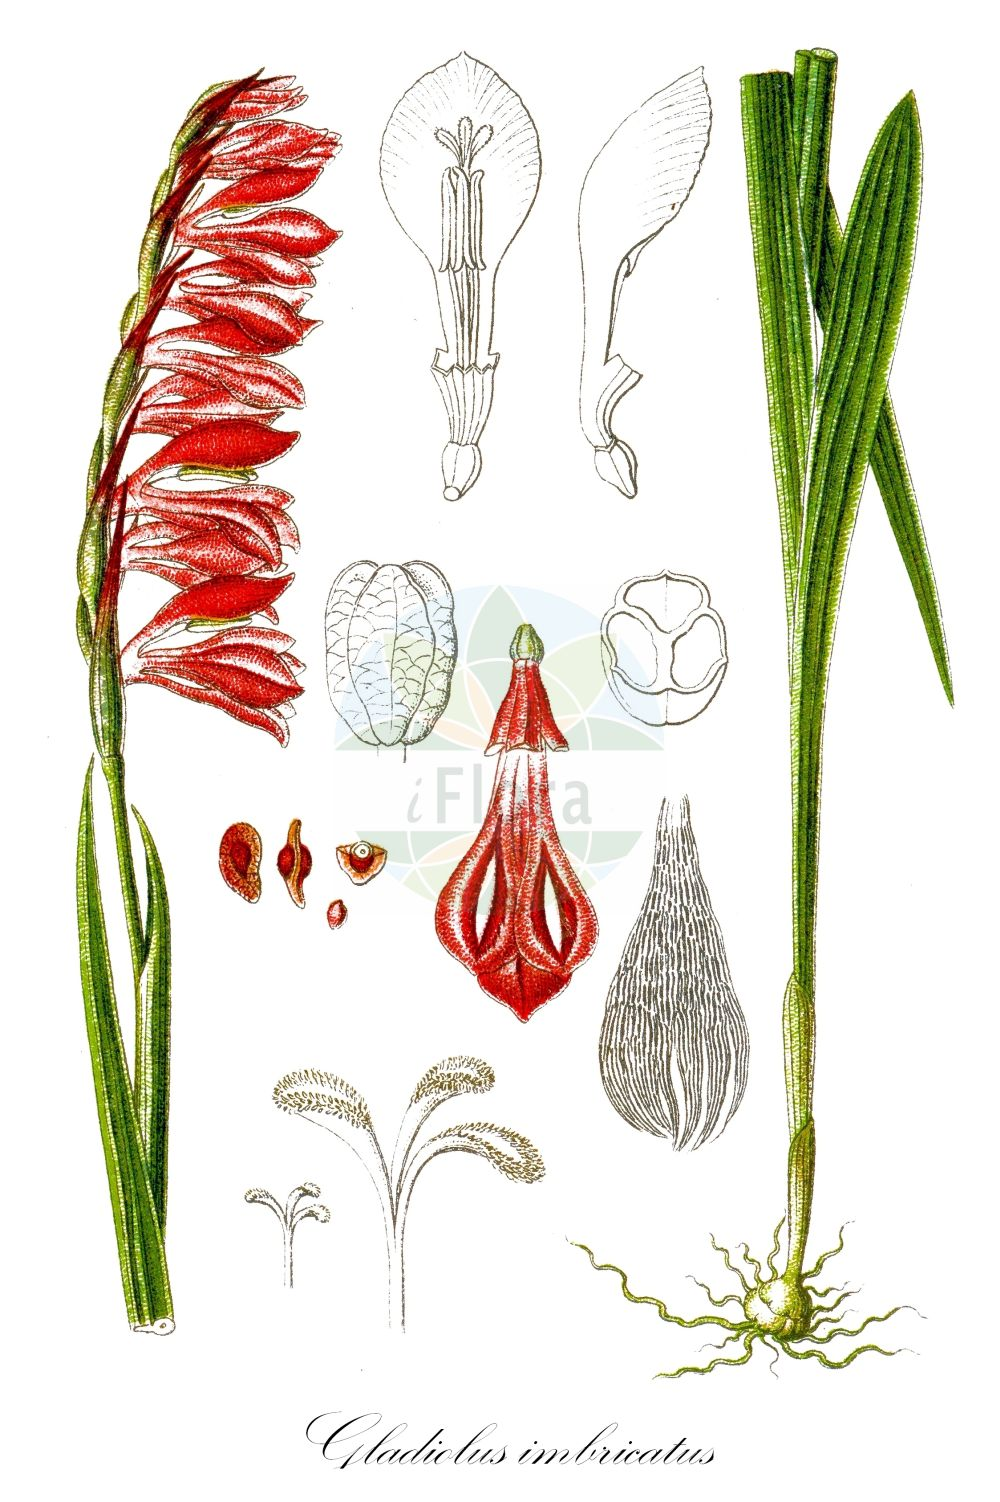 Historische Abbildung von Gladiolus imbricatus (Dachziegelige Siegwurz - Meadow Gladiolus). Das Bild zeigt Blatt, Bluete, Frucht und Same. ---- Historical Drawing of Gladiolus imbricatus (Dachziegelige Siegwurz - Meadow Gladiolus).The image is showing leaf, flower, fruit and seed. (Gladiolus imbricatus,Dachziegelige Siegwurz,Meadow Gladiolus,Gladiolus apterus,Gladiolus crispiflorus,Gladiolus galiciensis,Gladiolus hygrophilus,Gladiolus libanoticus,Gladiolus marschallii,Gladiolus neglectus,Gladiolus raddeanus,Gladiolus rossicus,Sphaerospora imbricata,Wiesen-Gladiole,Gladiolus,Siegwurz,Gladiolus,Iridaceae,Schwertliliengewaechse,Iris family,Blatt,Bluete,Frucht,Same,leaf,flower,fruit,seed,Sturm (1796f))